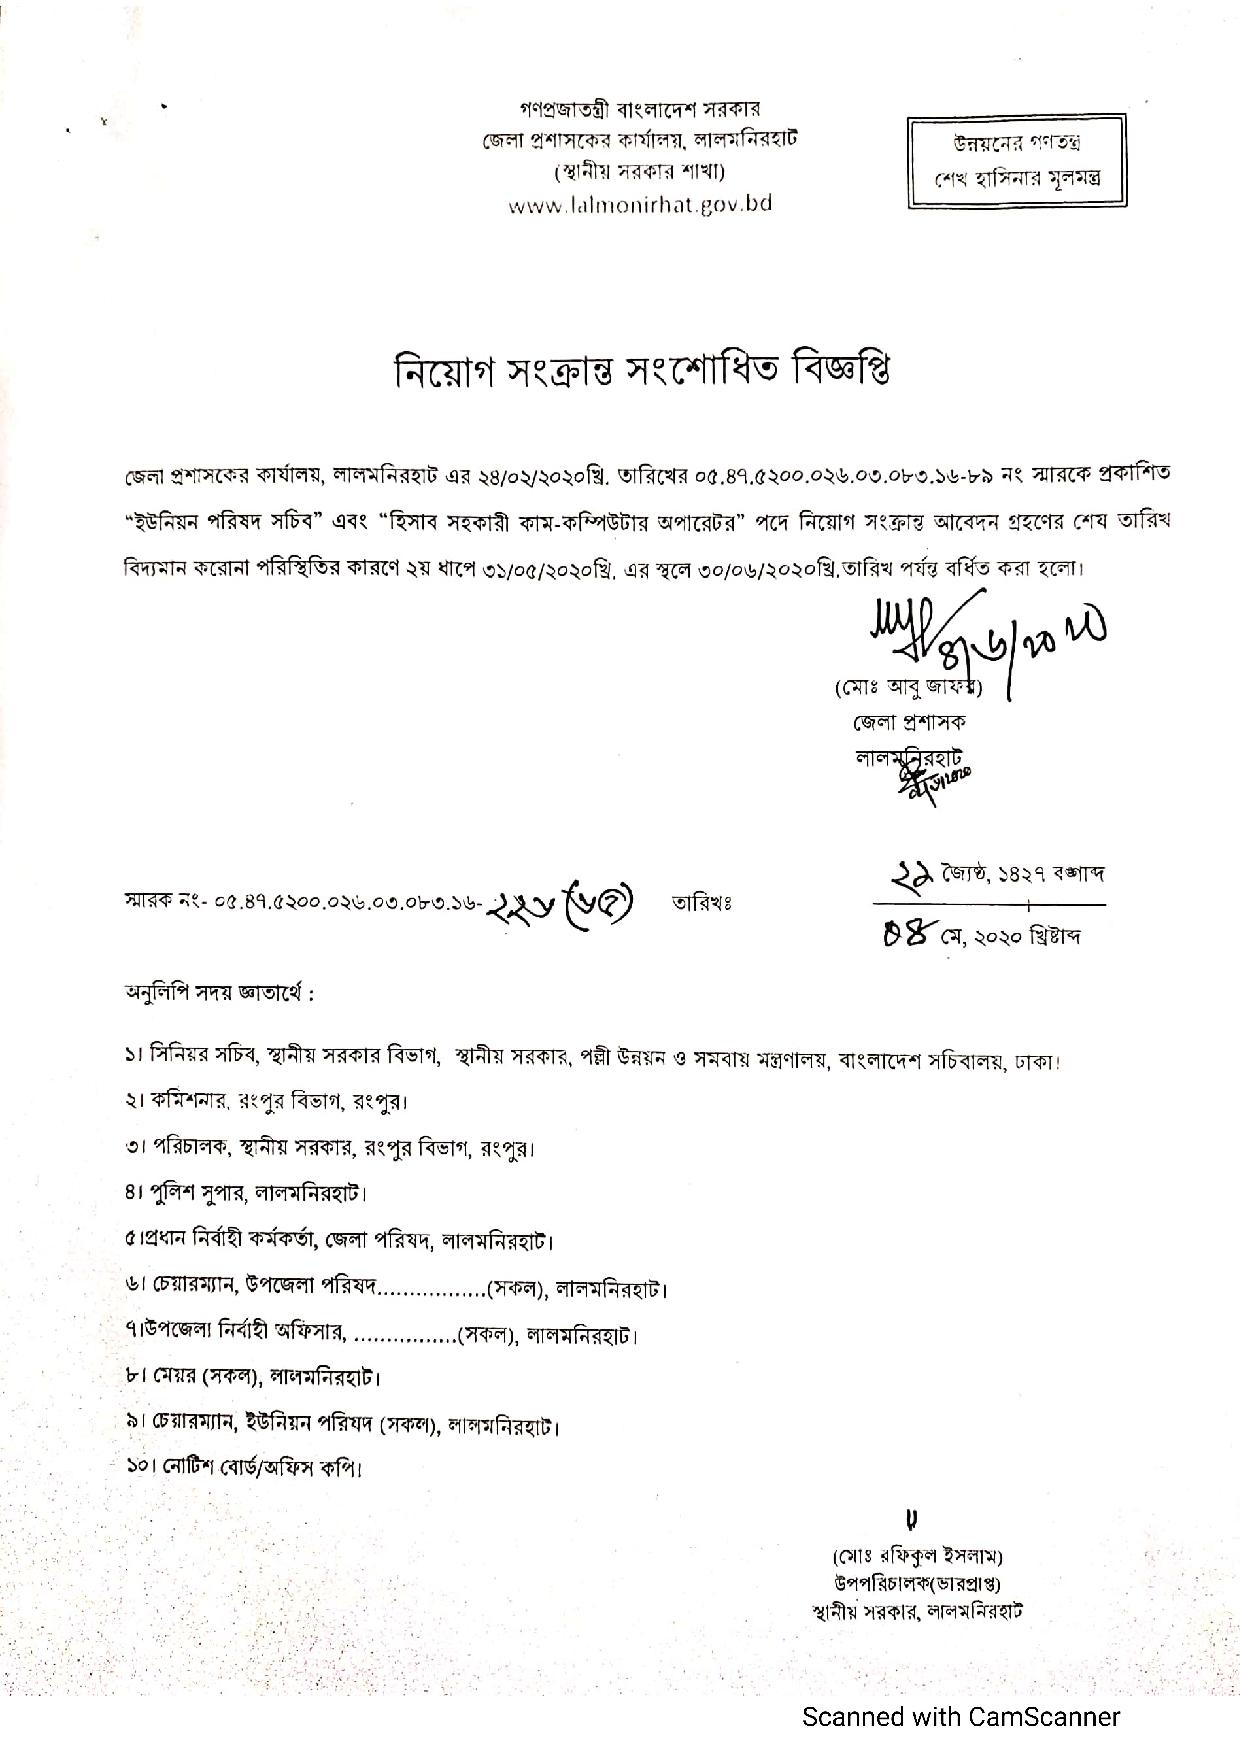 DC Office Lalmonirhat Job Circular